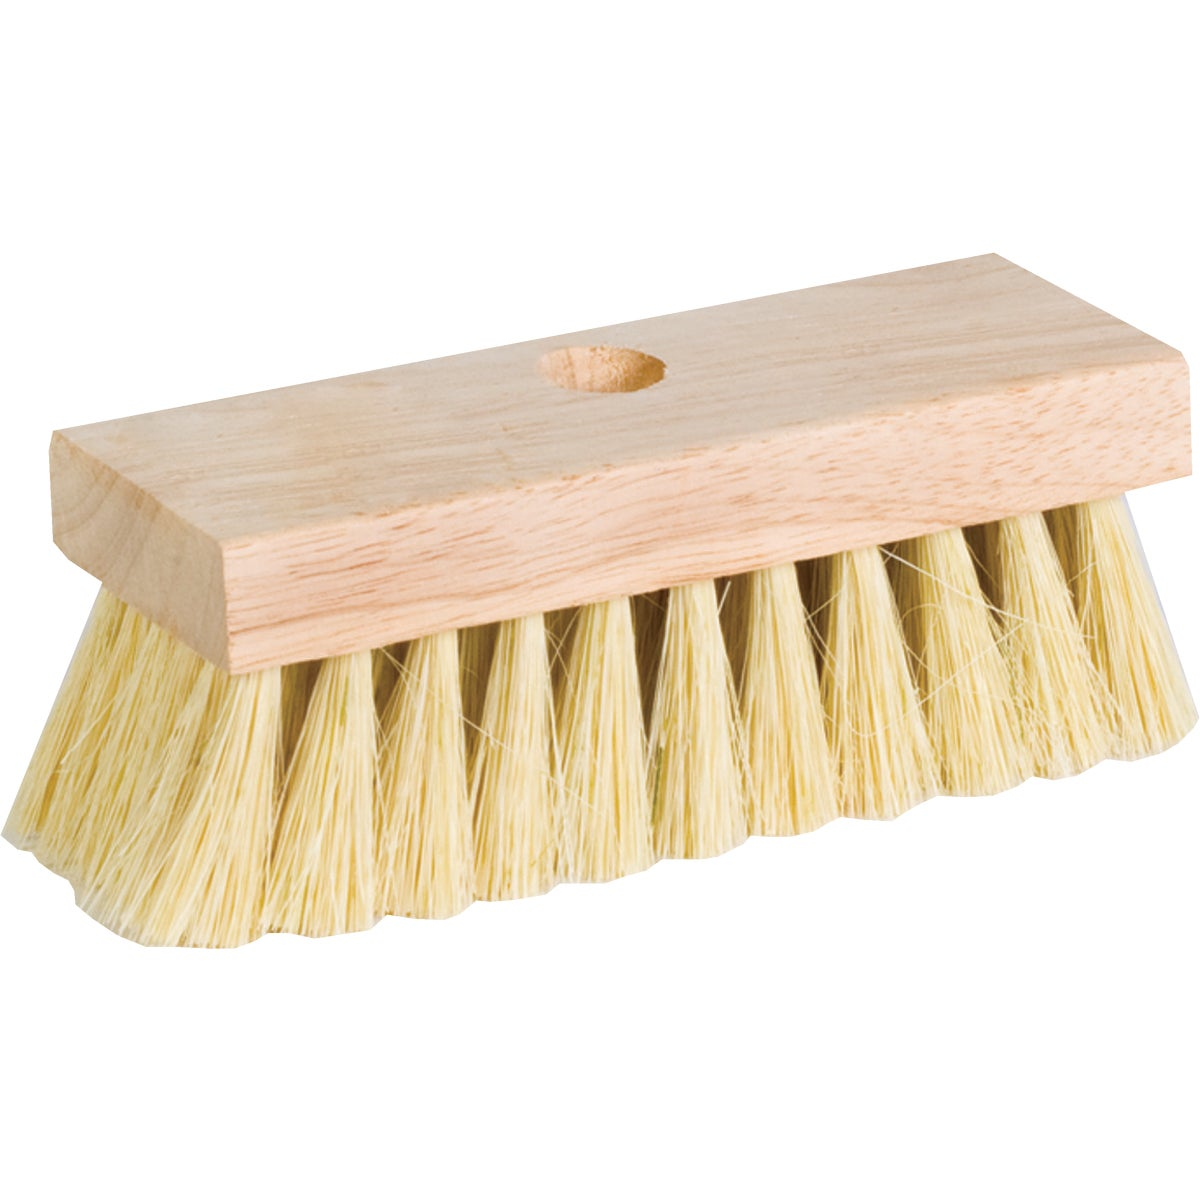 ERIE ROOF BRUSH